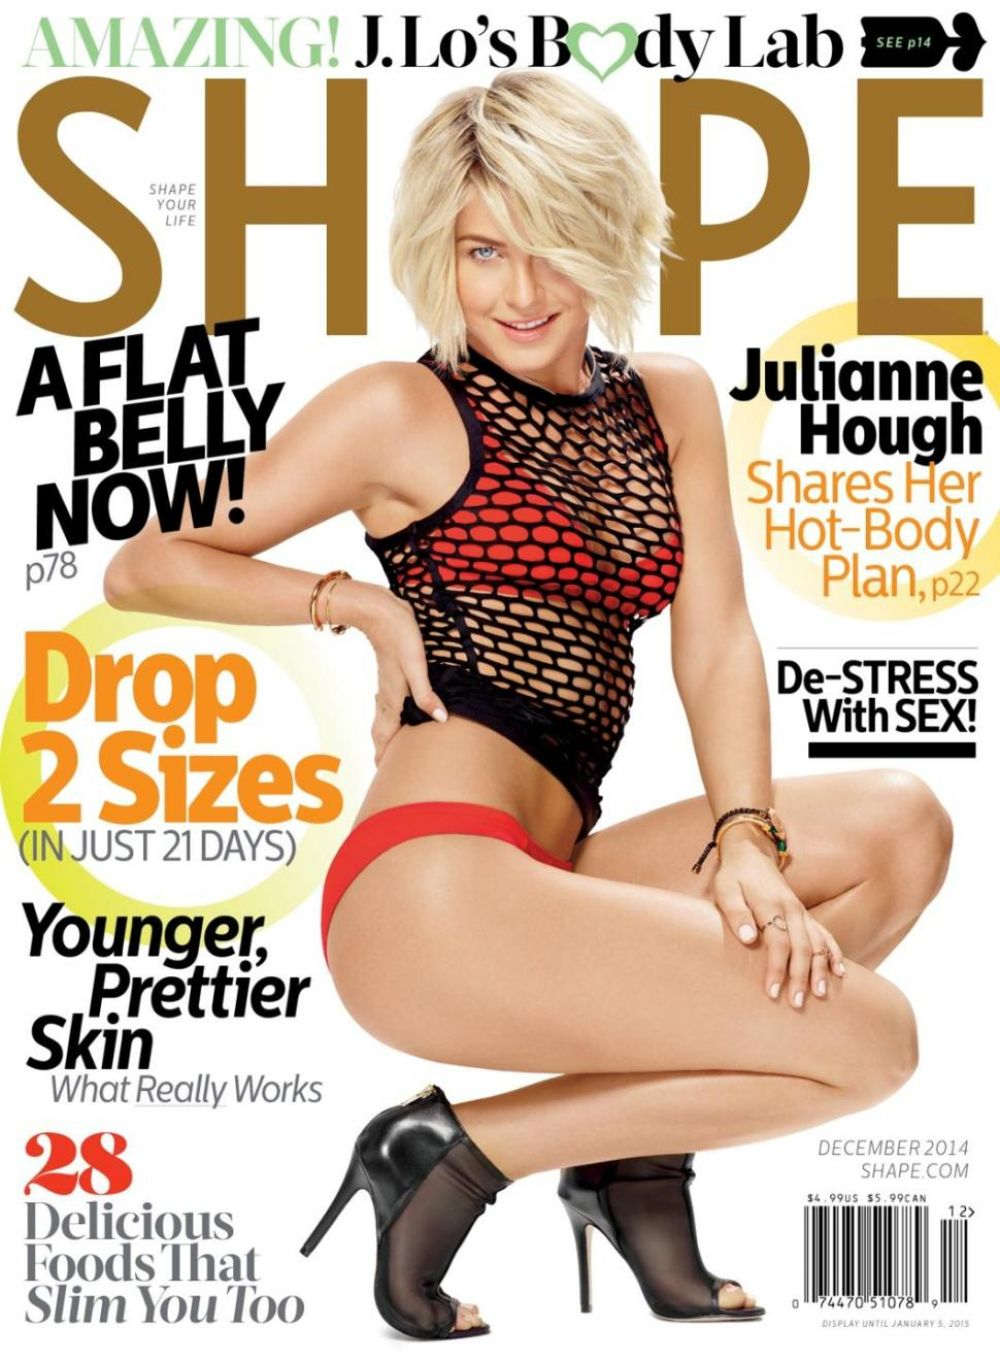 Julianne Hough In Shape Magazine December 2014